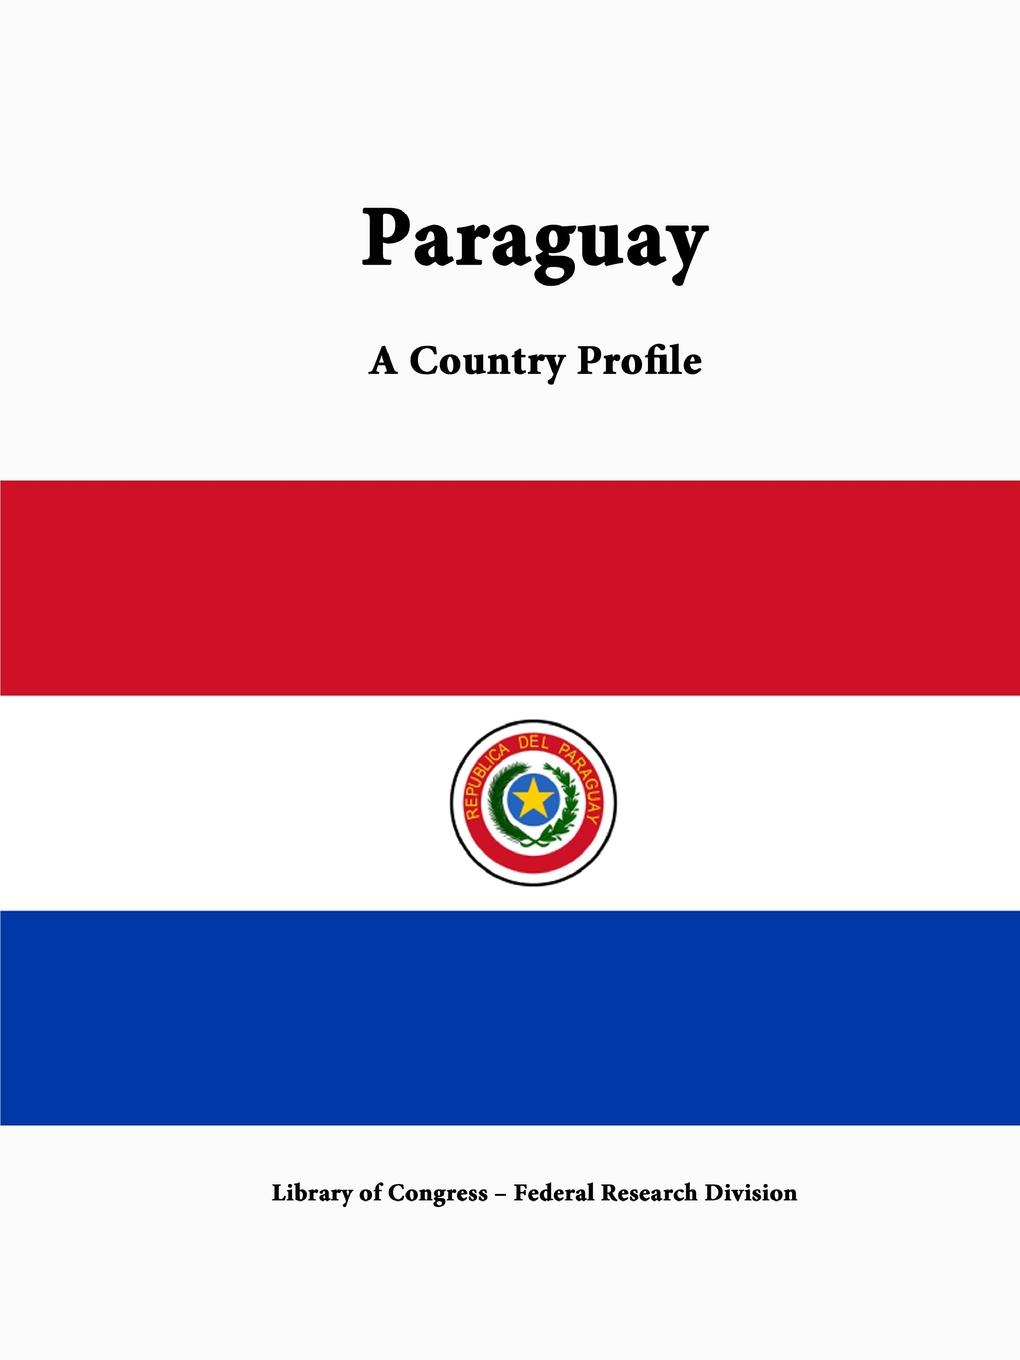 Library of Congress, Federal Research Division Paraguay. A Country Profile library of congress federal research division venezuela a country profile